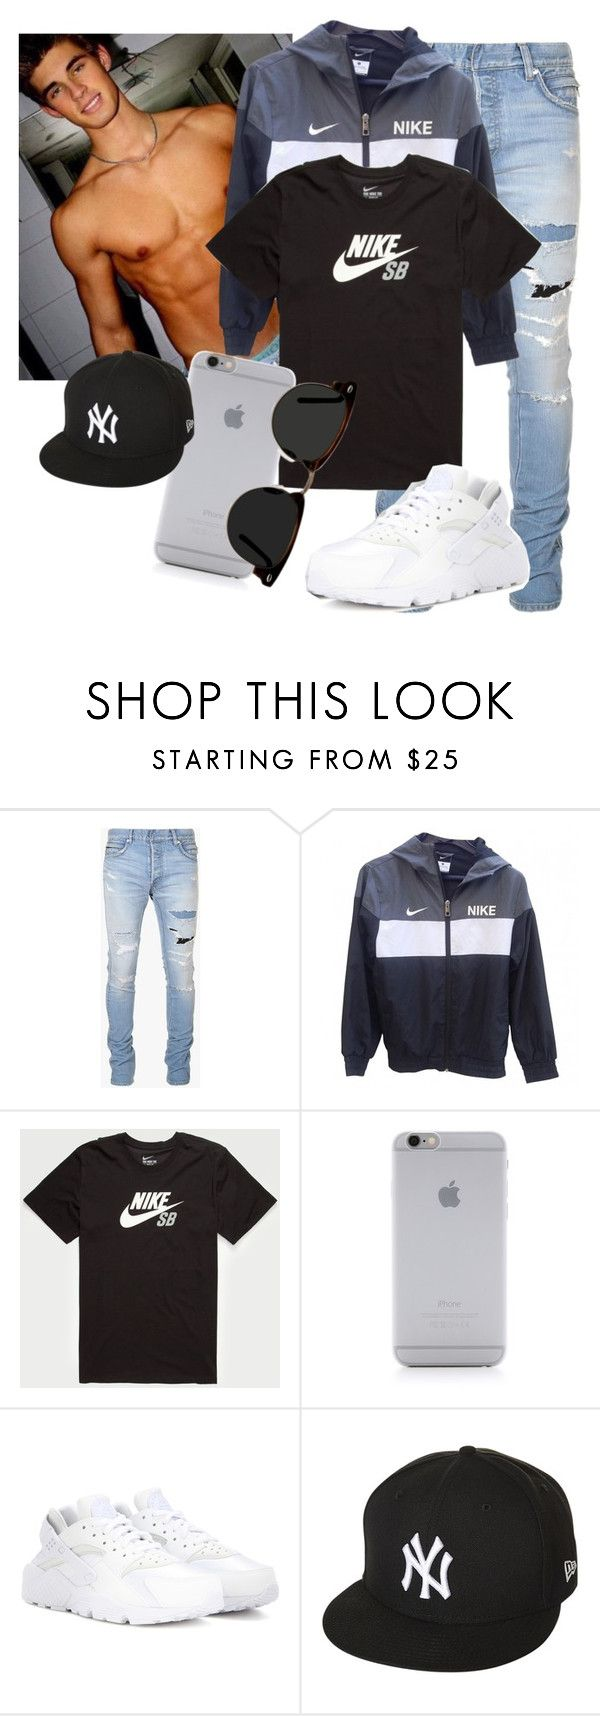 """Busy Day"" by ebony-kayla ❤ liked on Polyvore featuring Balmain, NIKE, Native Union, New Era, Ace, men's fashion and menswear"